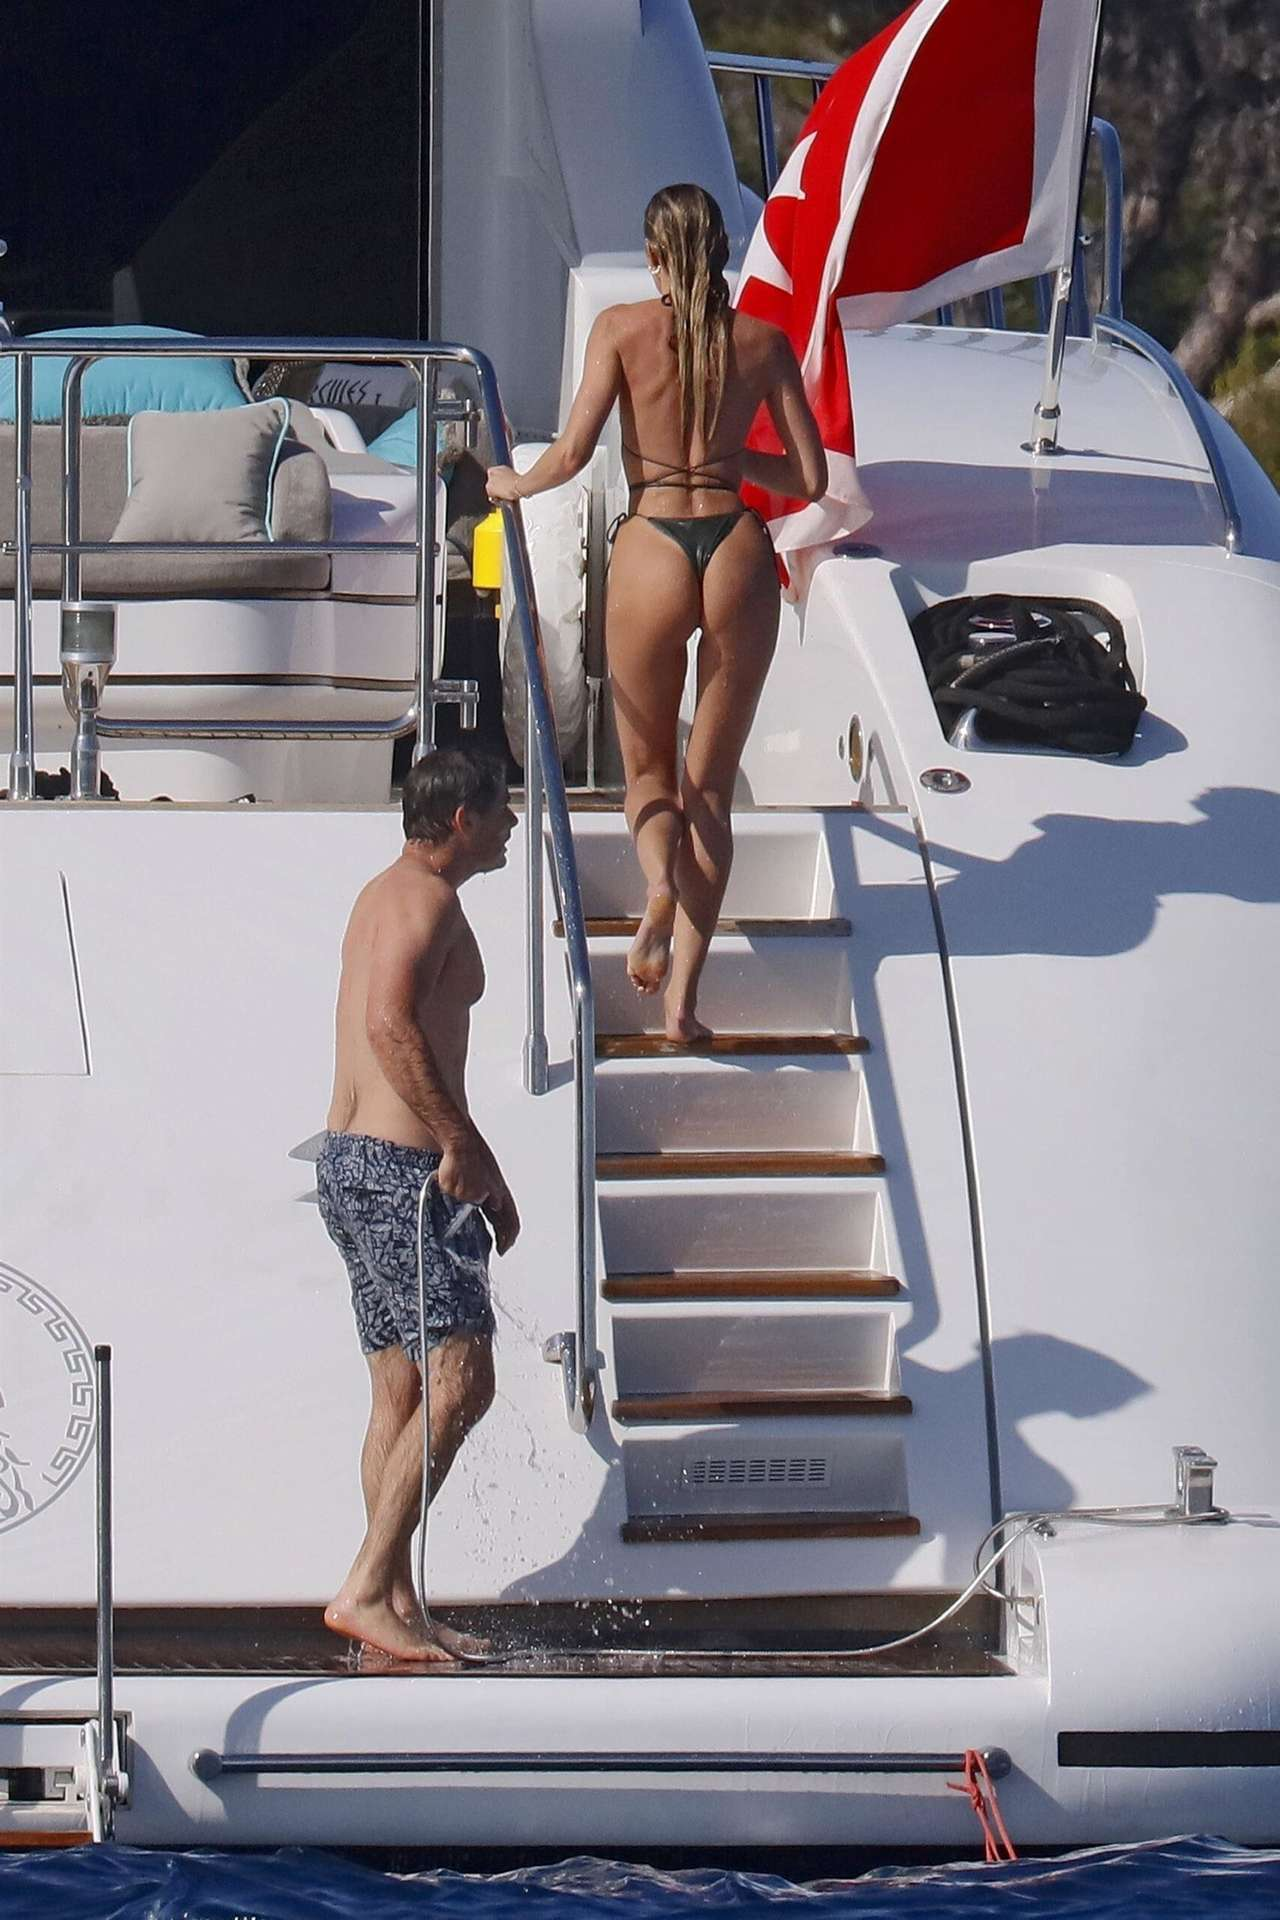 Candice Swanepoel Booty in a Thong Bikini on a Yacht in the French Riviera